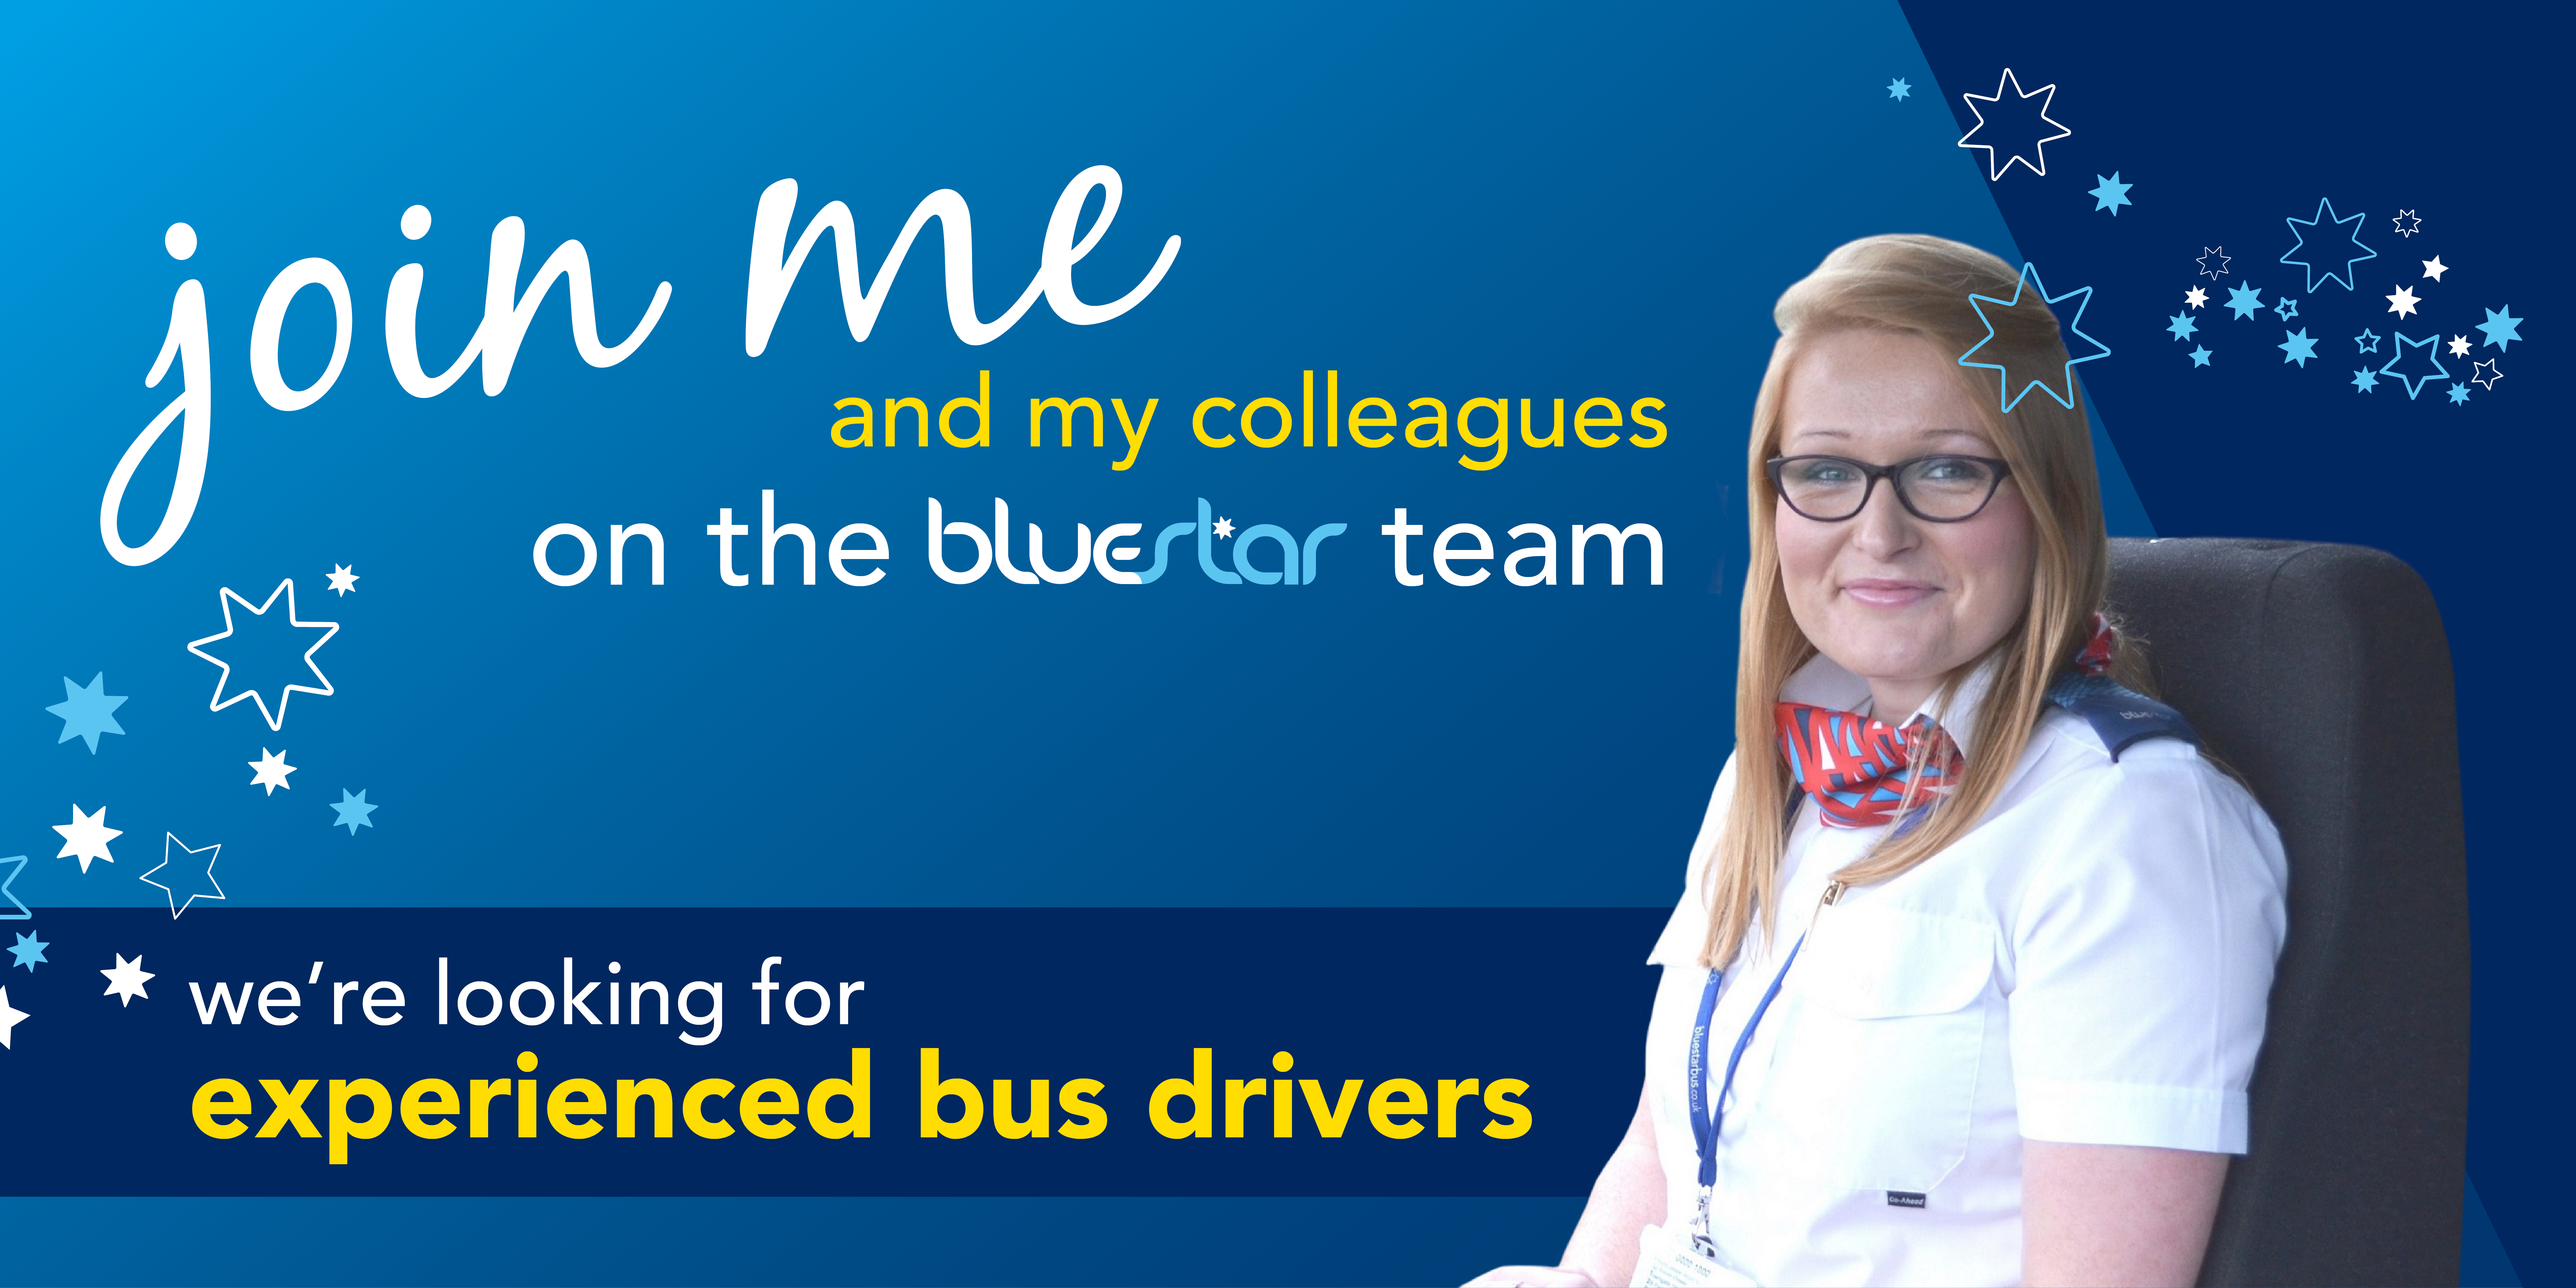 A promotional image to highlight our vacancies for experienced bus drivers